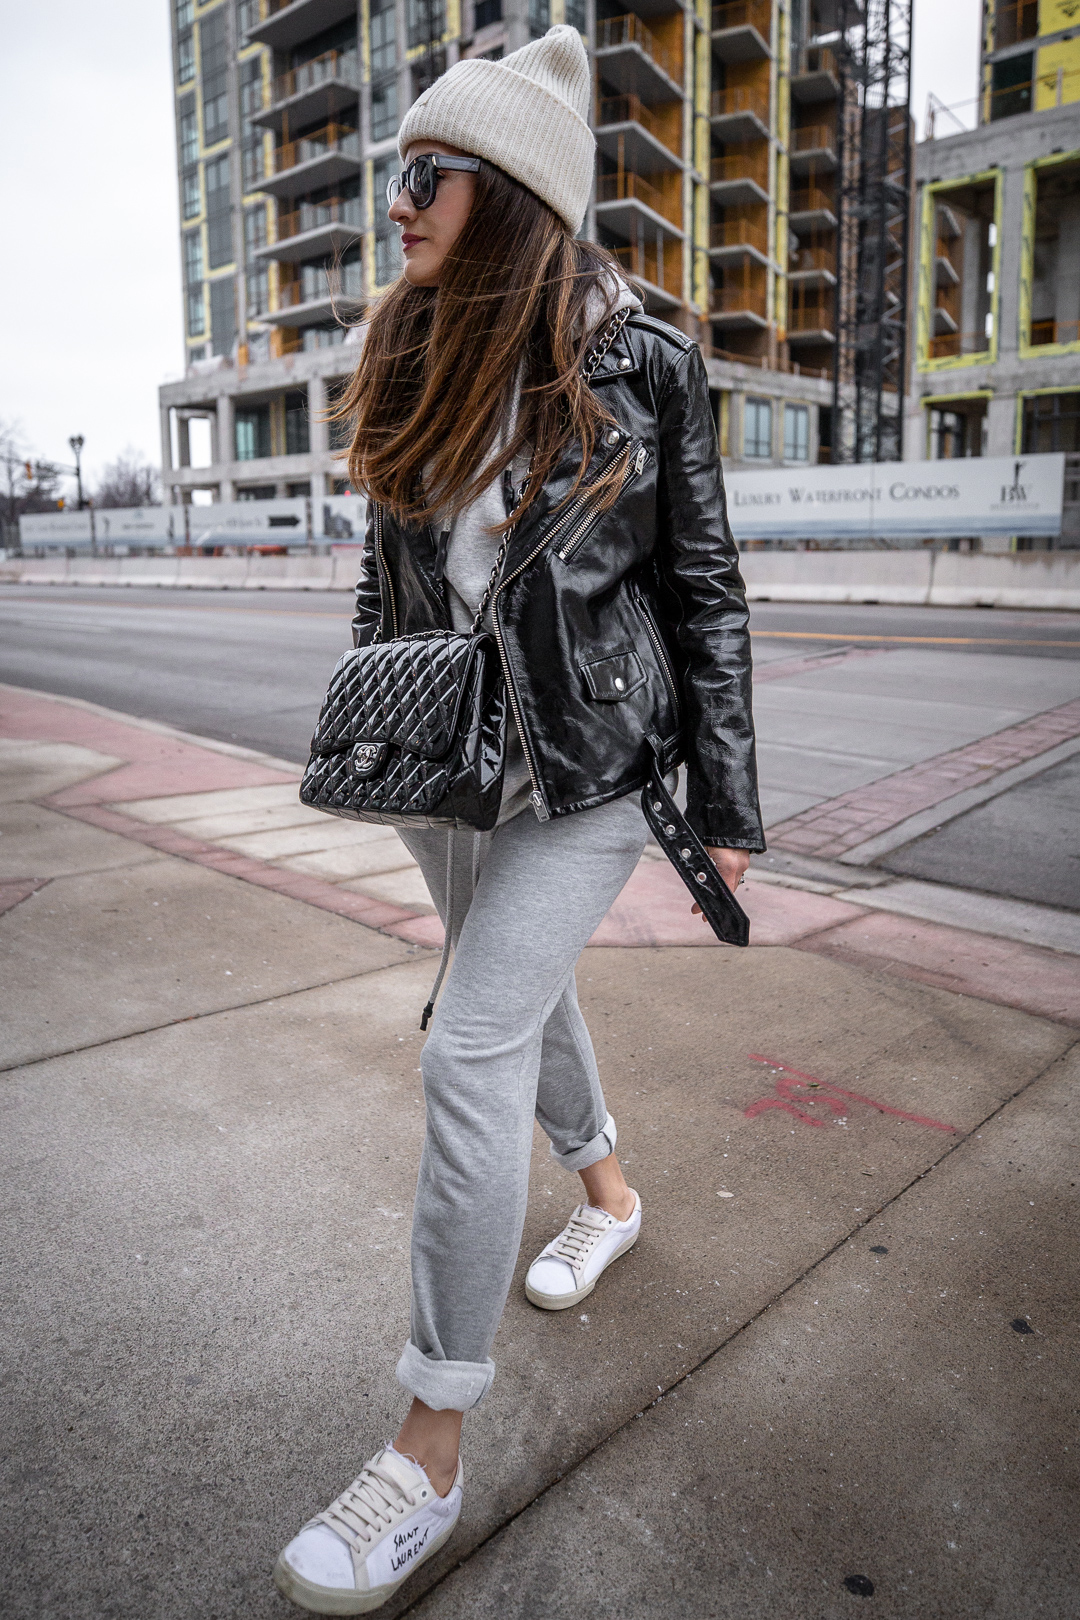 Nathalie Martin - IRO Paris patent leather moto jacket, Zara sweatsuit, grey hoodie and sweatpants, Saint Laurent white canvas logo sneakers, CHANEL patent leather jumbo flap quilted bag, ACNE studios Pansy face beanie hat - woahstyle.com_5538.jpg